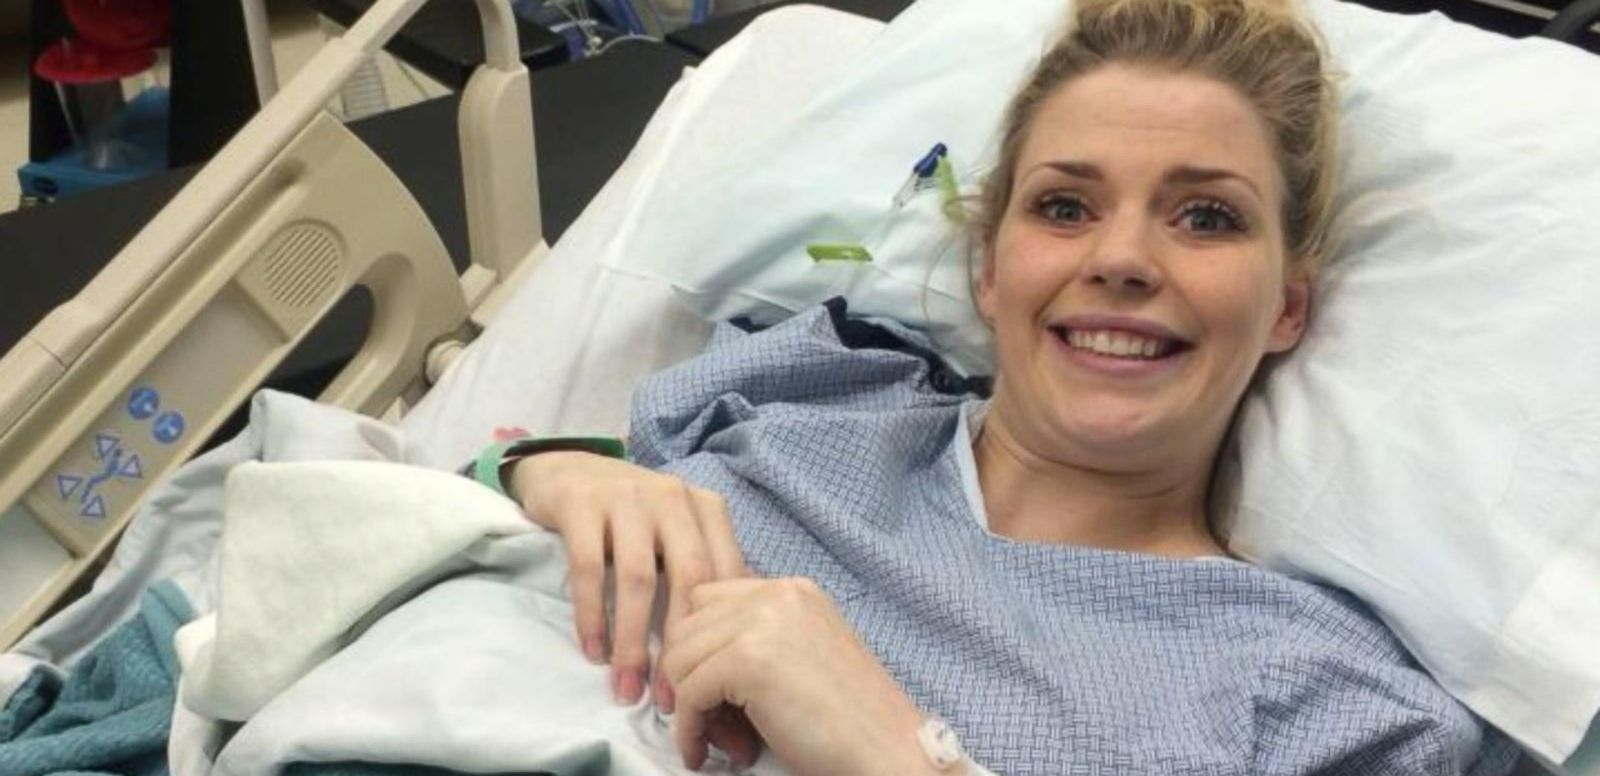 VIDEO: A photo of Ashley Gardner's reaction to being pregnant with quadruplets went viral earlier this year.